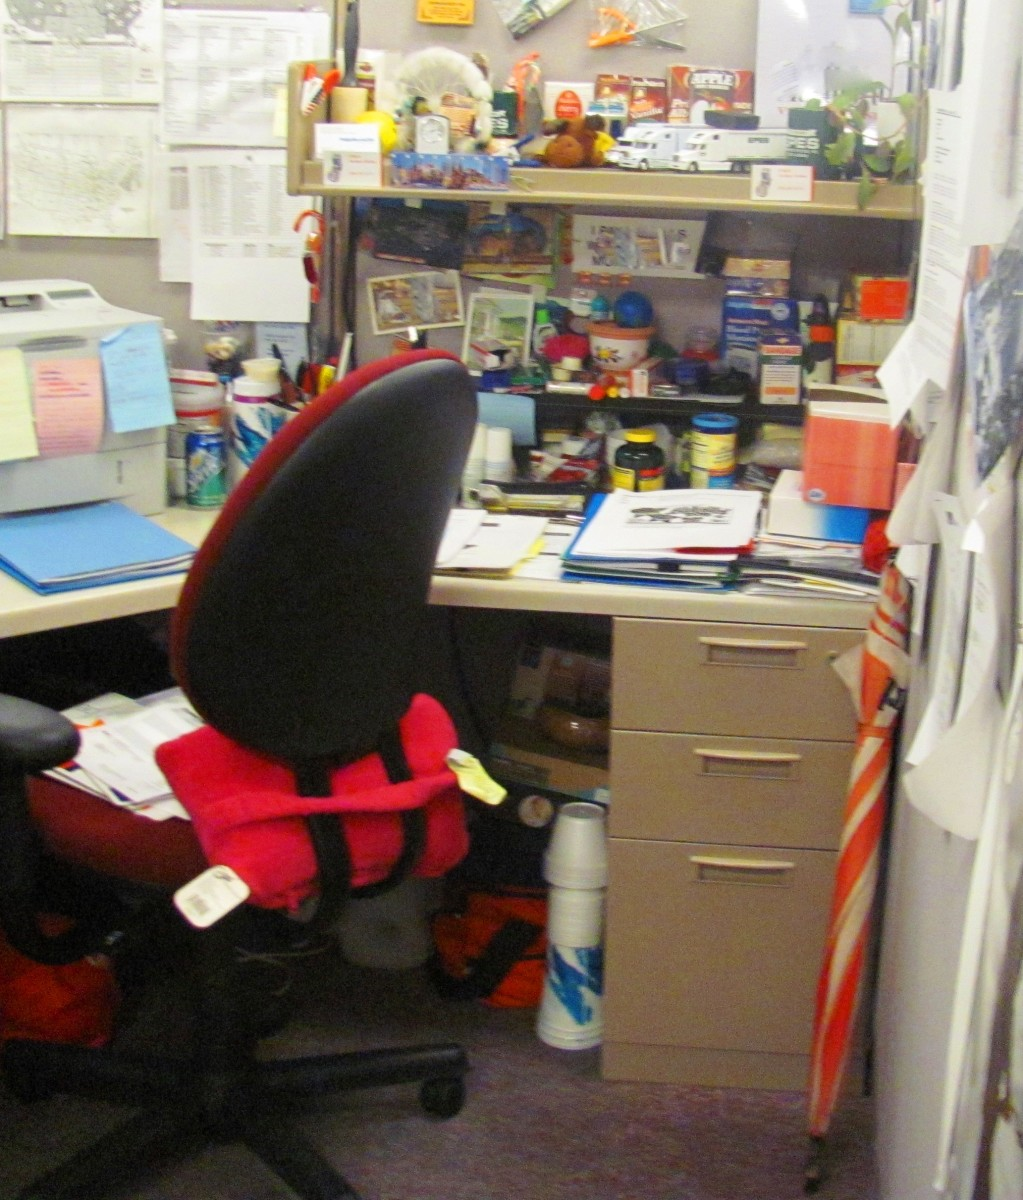 """Many workers display collections and knick-knacks in their cubicles in an attempt to make their office spaces seem like a """"home away from home."""""""